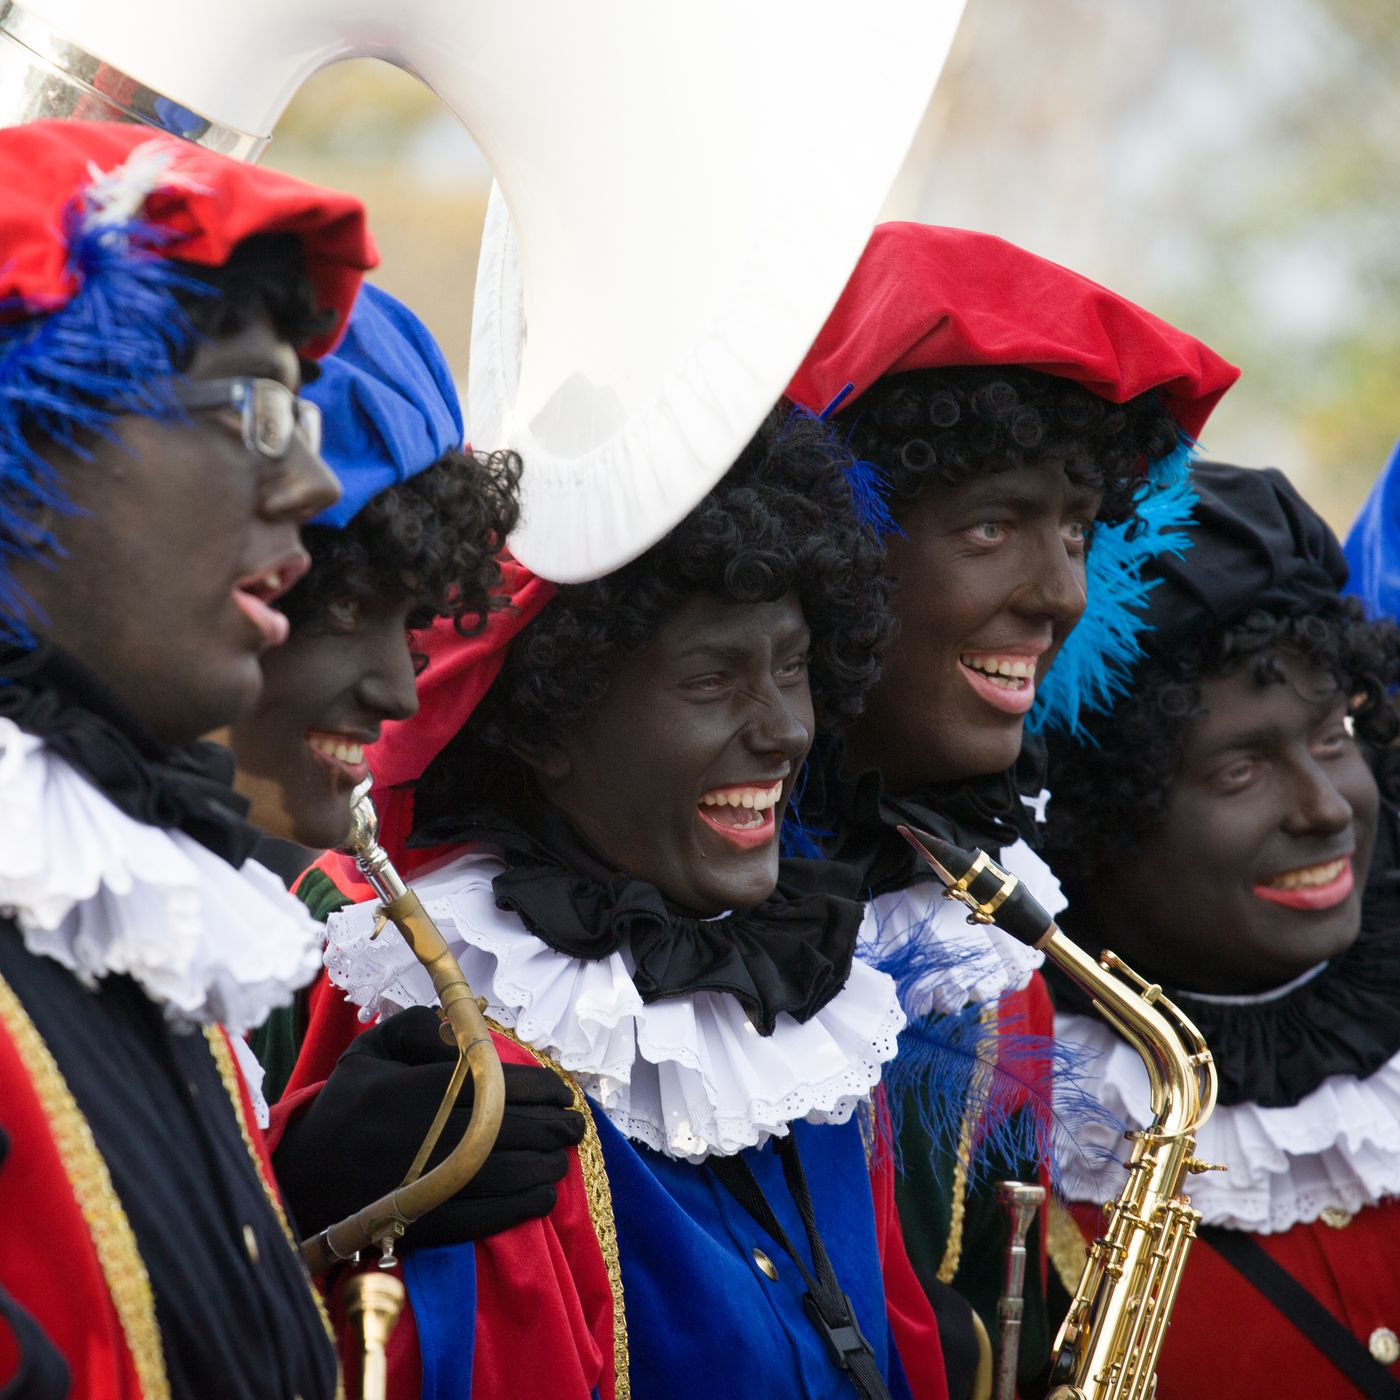 Black Pete Christmas History.Why Blackface Is Still Part Of Dutch Holidays Vox